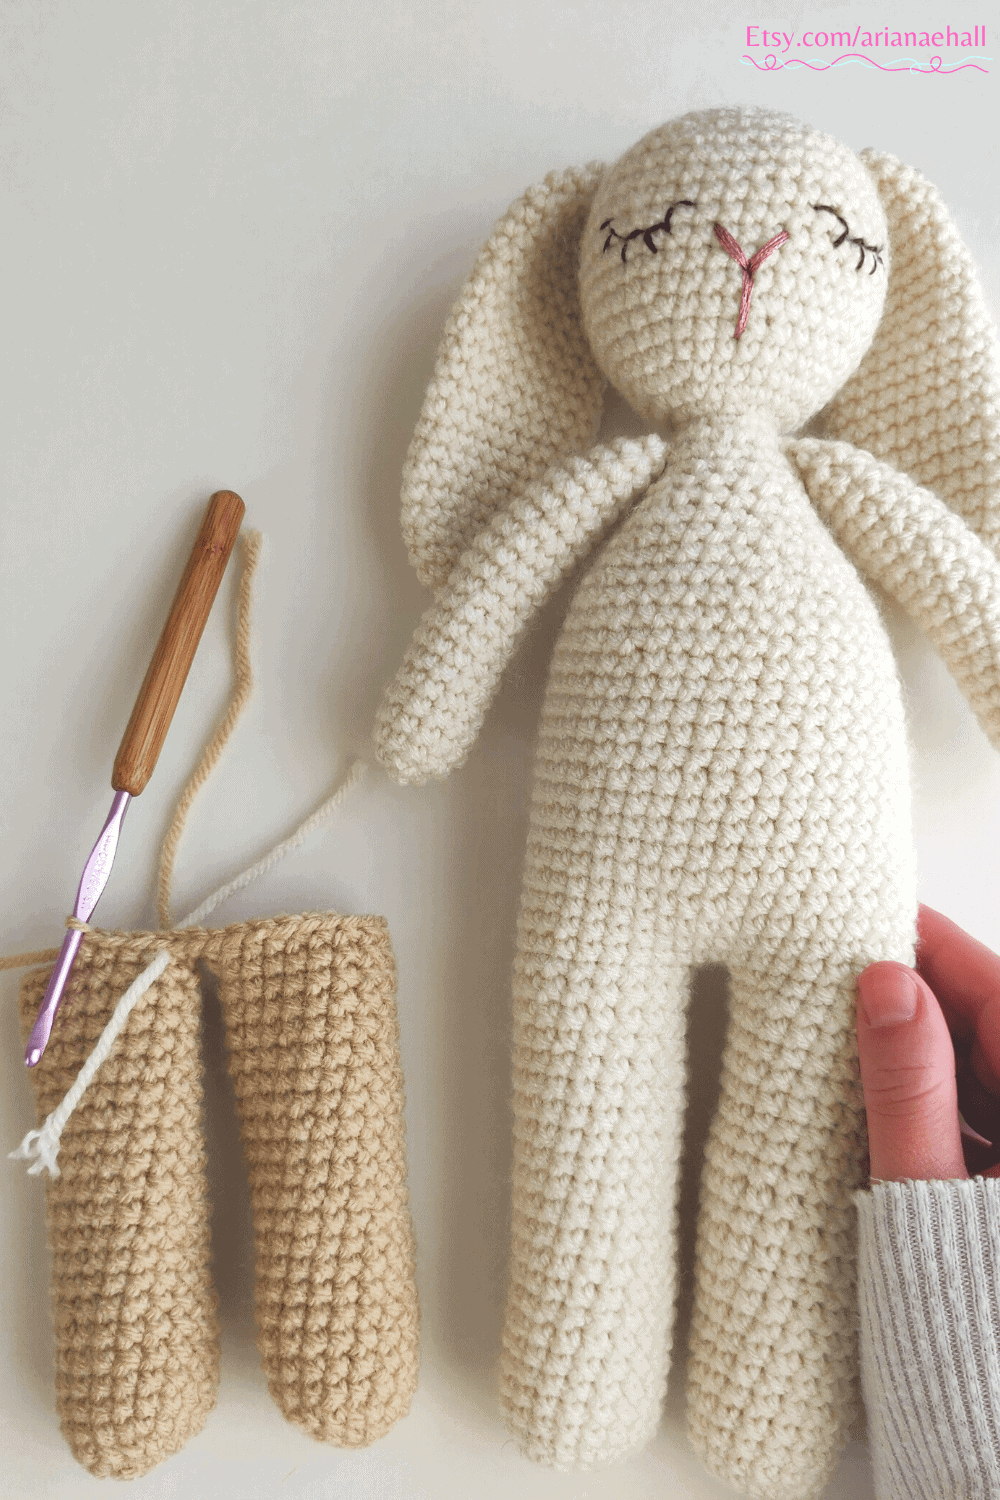 White crochet bunny and